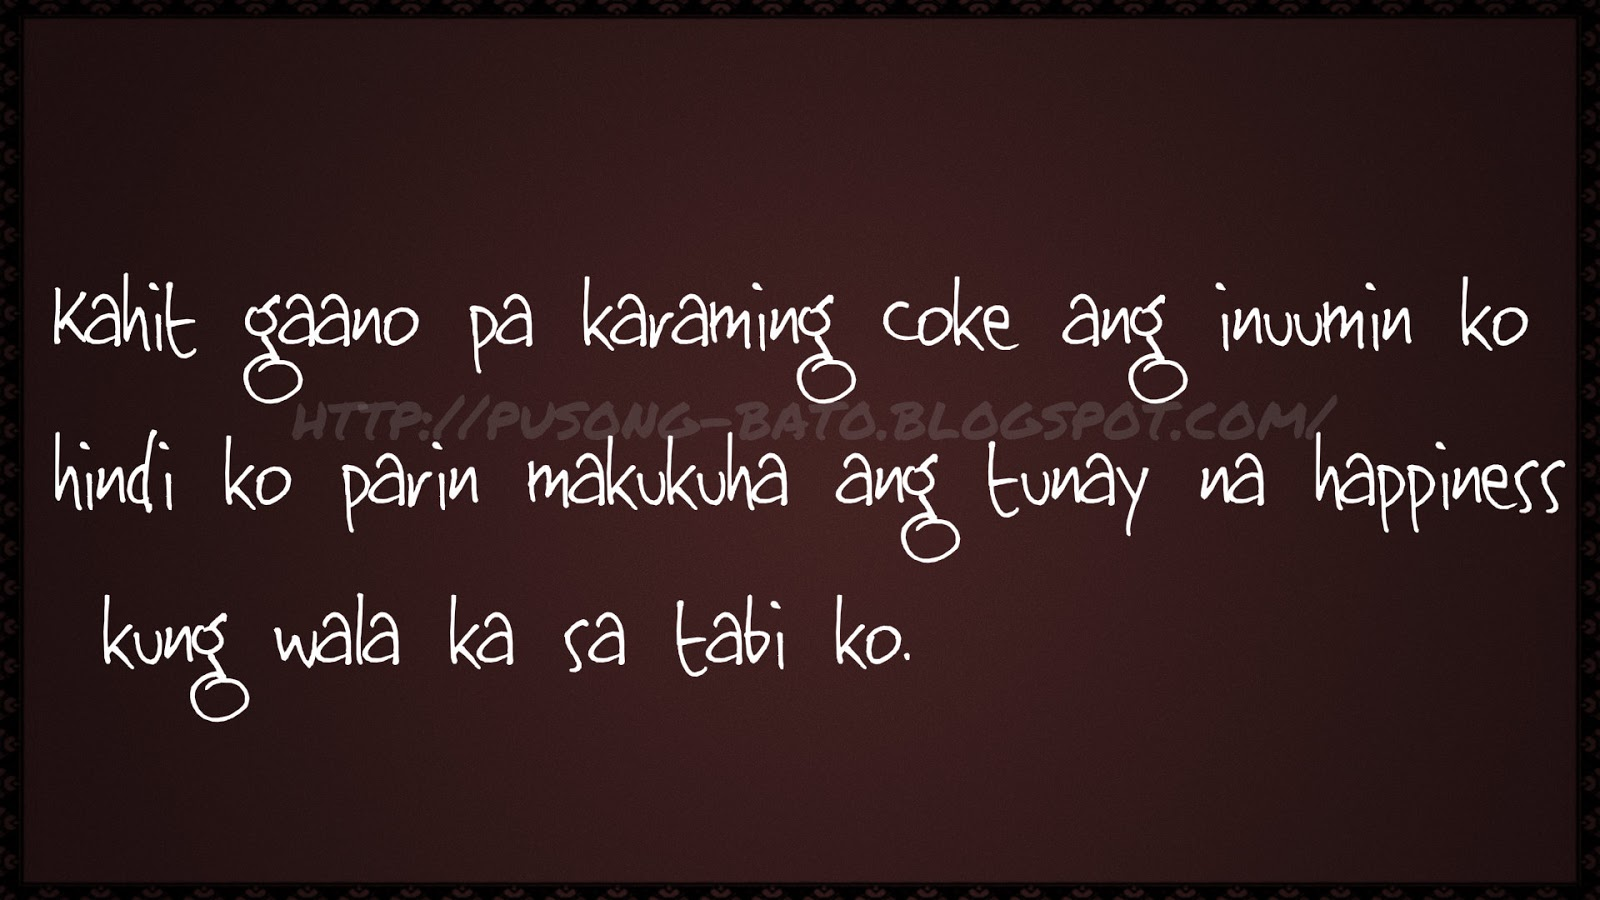 New Sad Quotes About Love Tagalog Love quotes tagalog